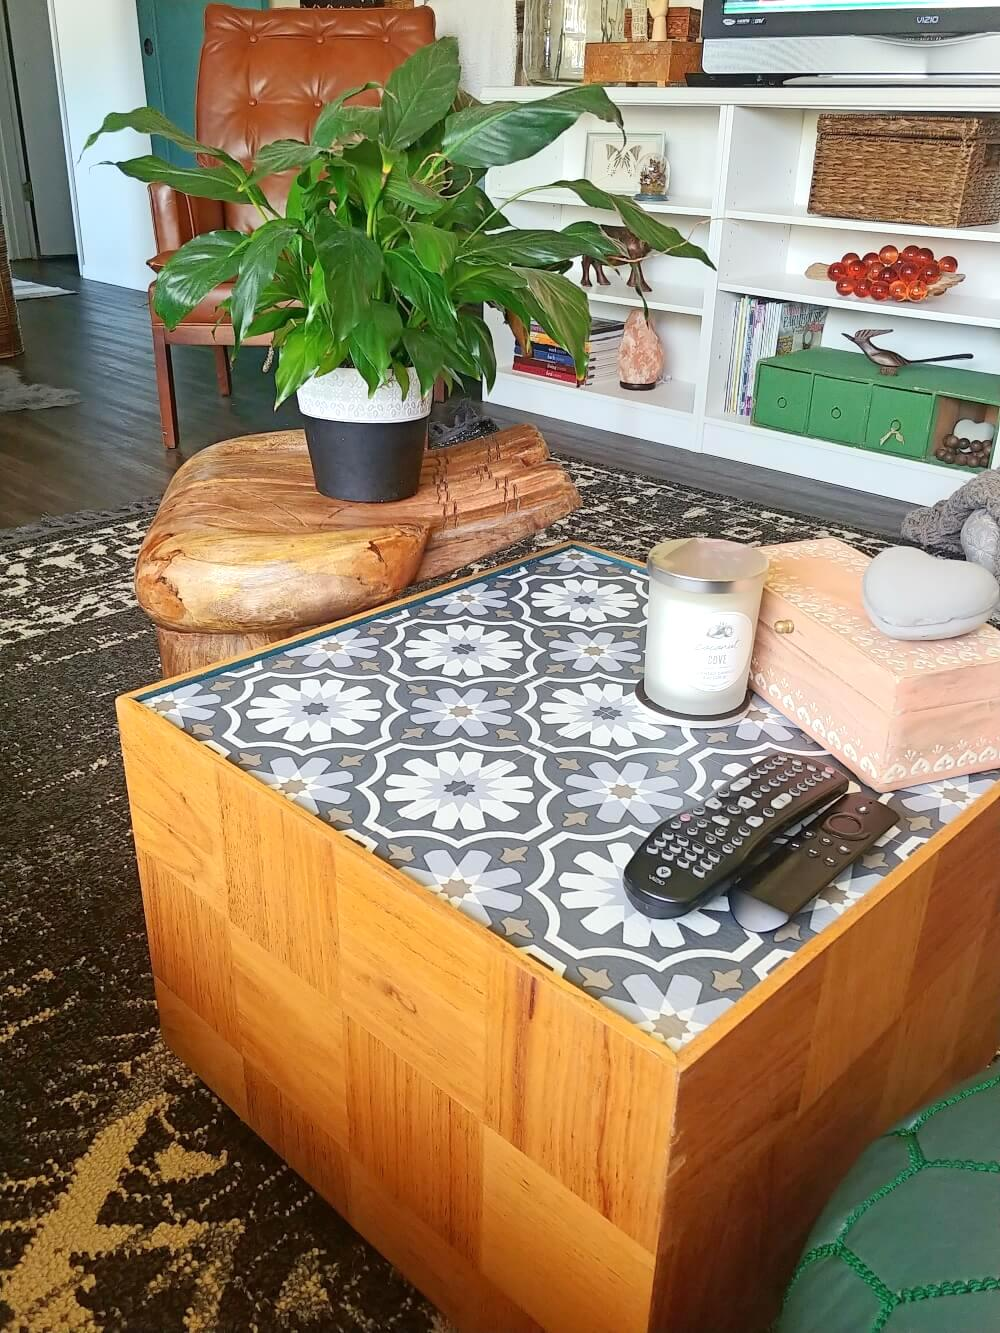 Mid-century modern coffee table by Little Vintage Cottage, featured on New Upcycled Projects to Make 586!